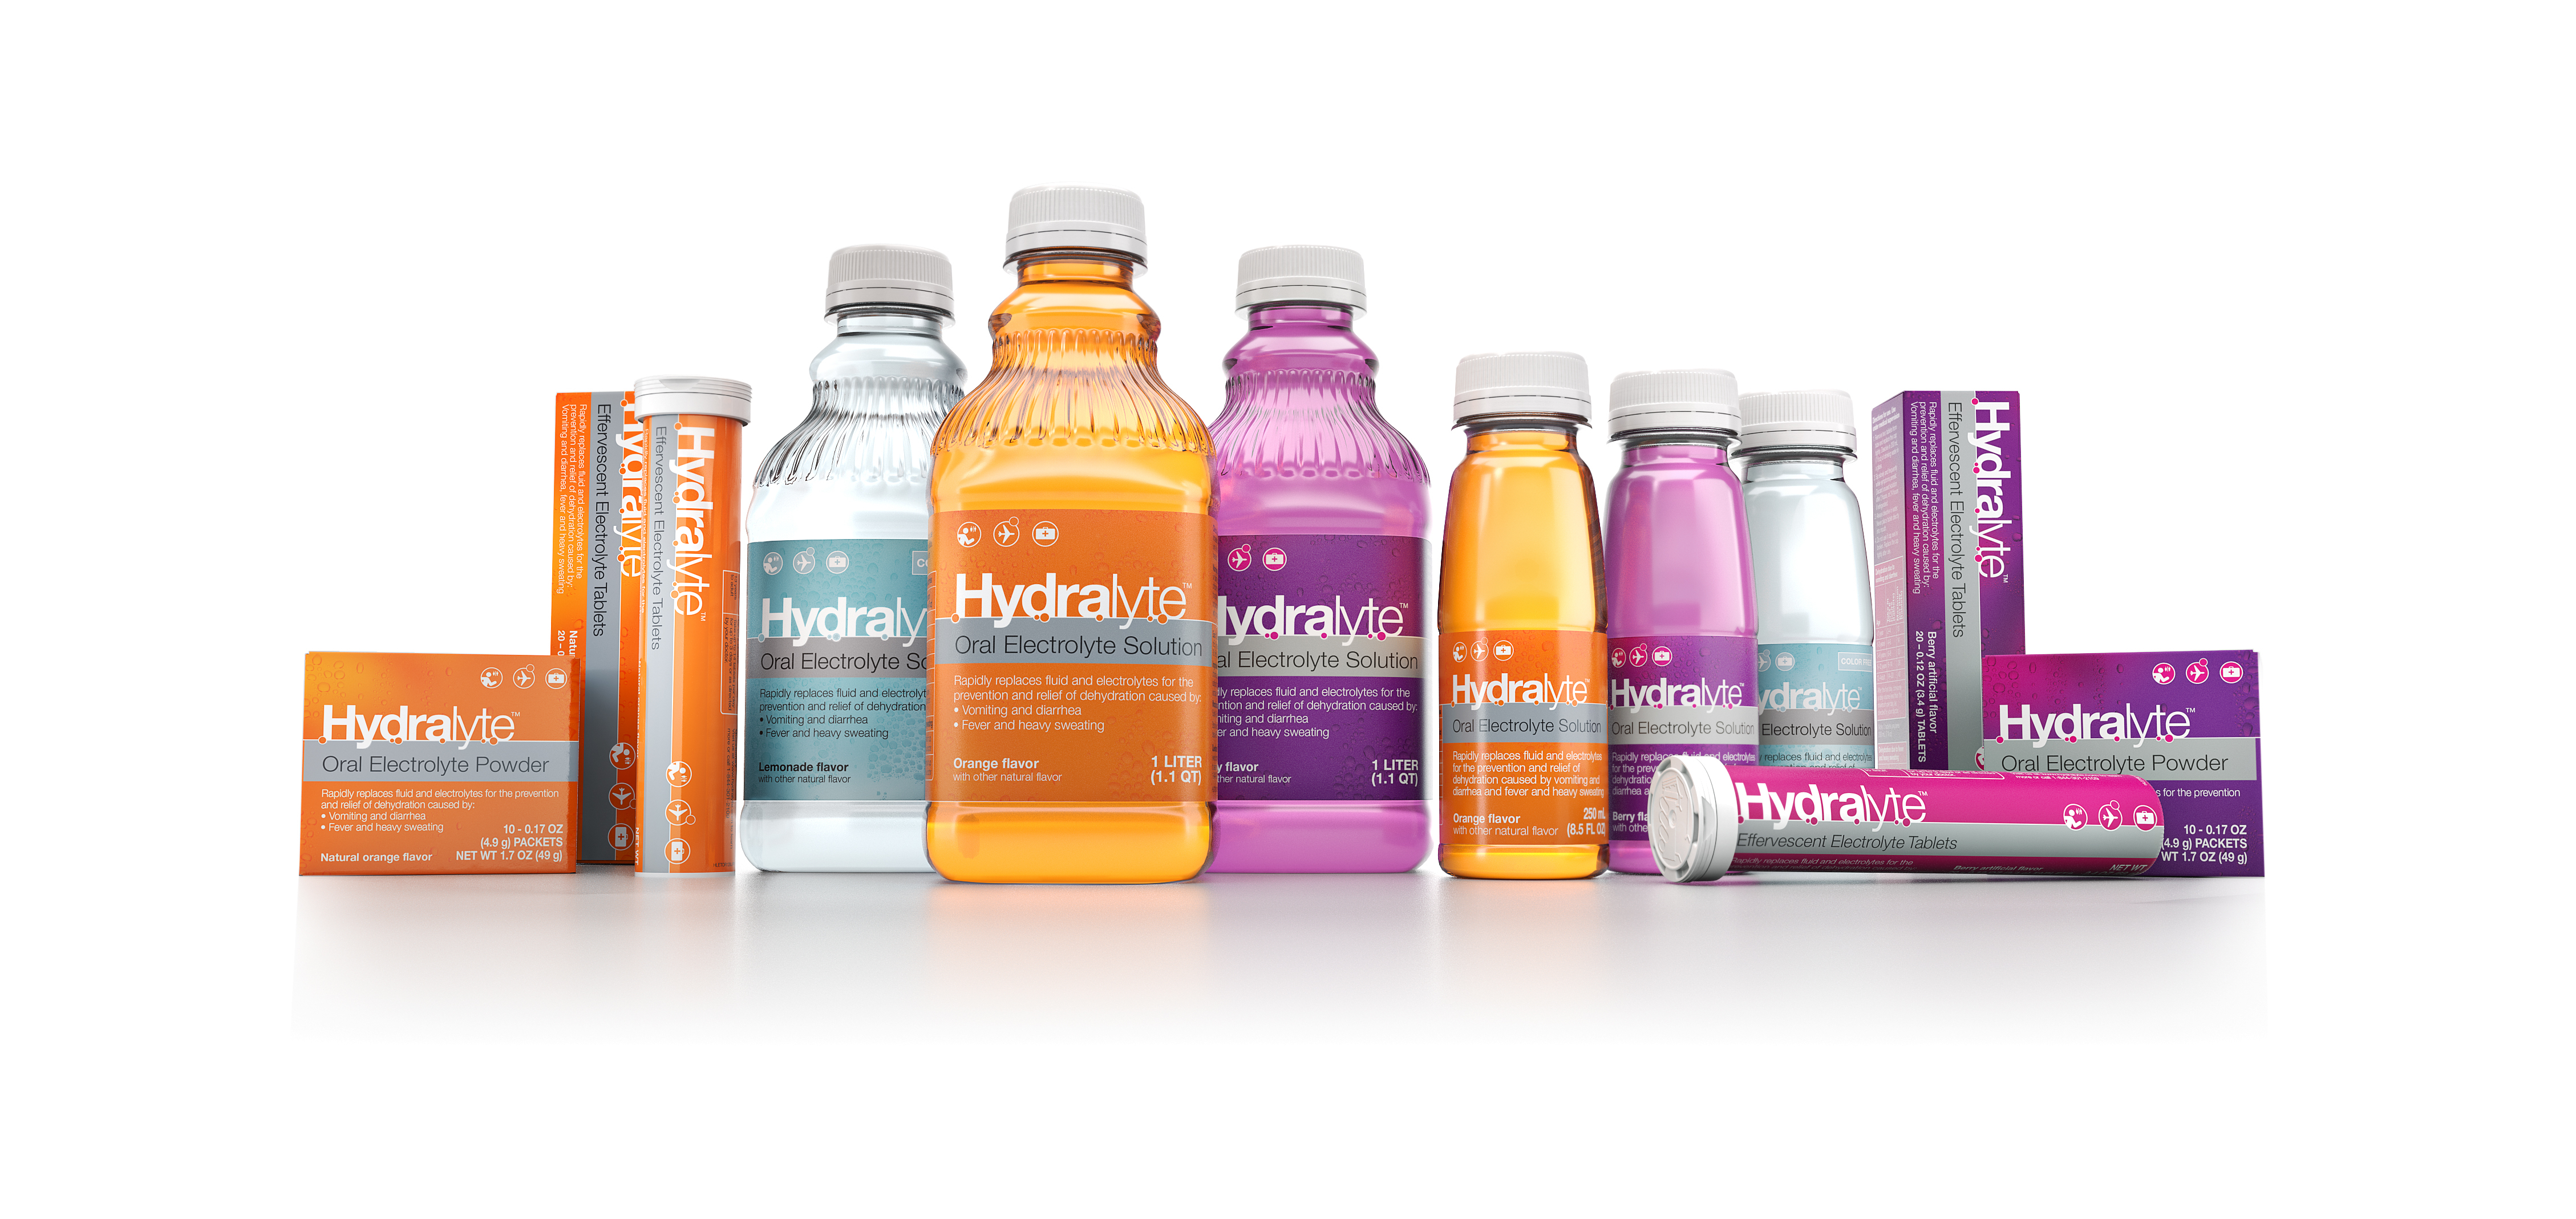 Hydralyte partners with Timmy Global Health to provide better tasting clinical hydration (Photo: Business Wire)